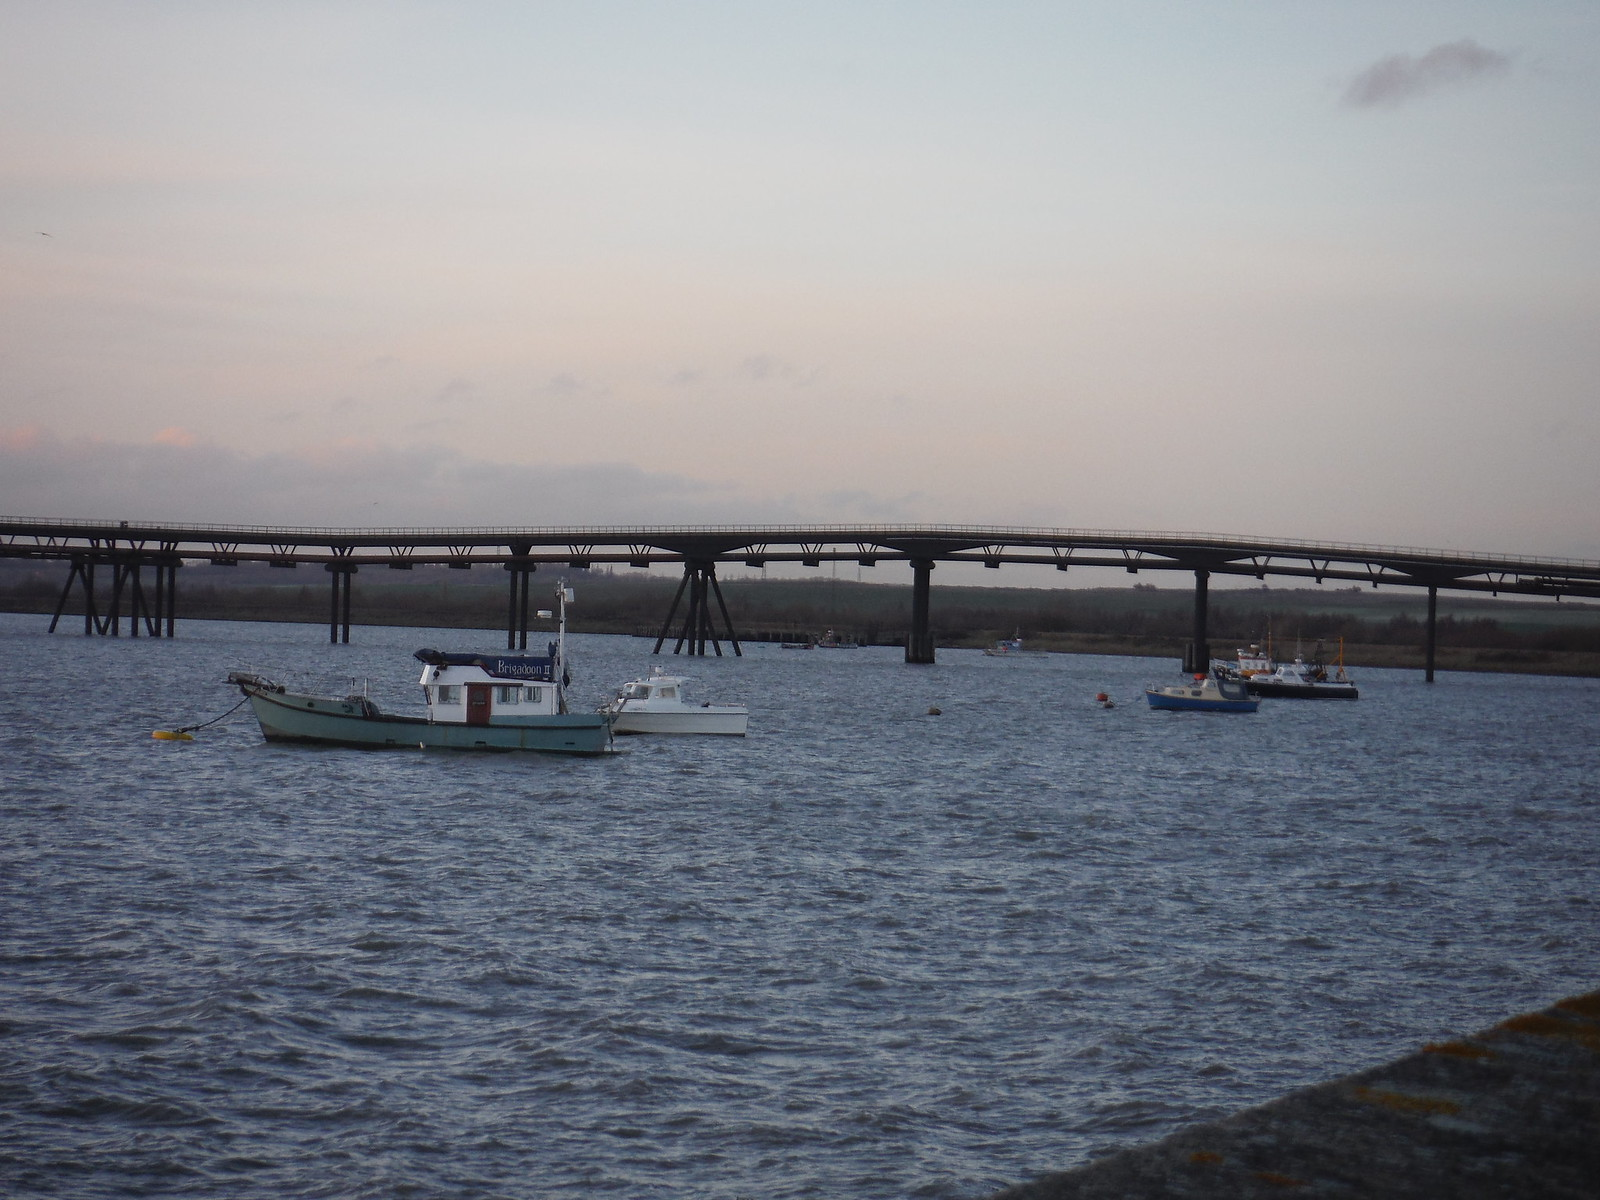 mile-long jetty and boats, Holehaven, Canvey Island SWC Walk 258 Benfleet Circular (via Canvey Island)